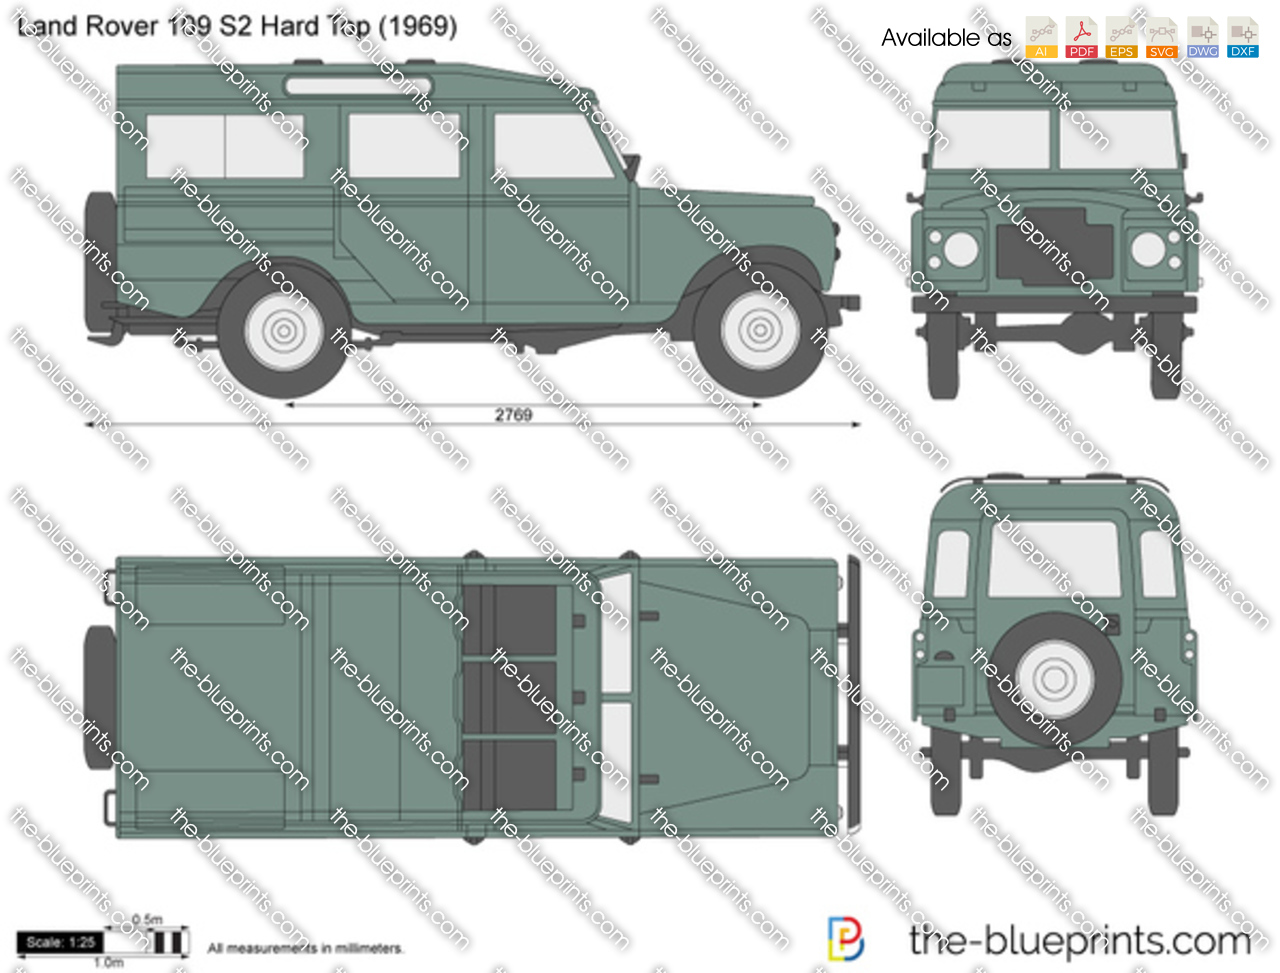 Land Rover 109 S2 Hard Top 1970